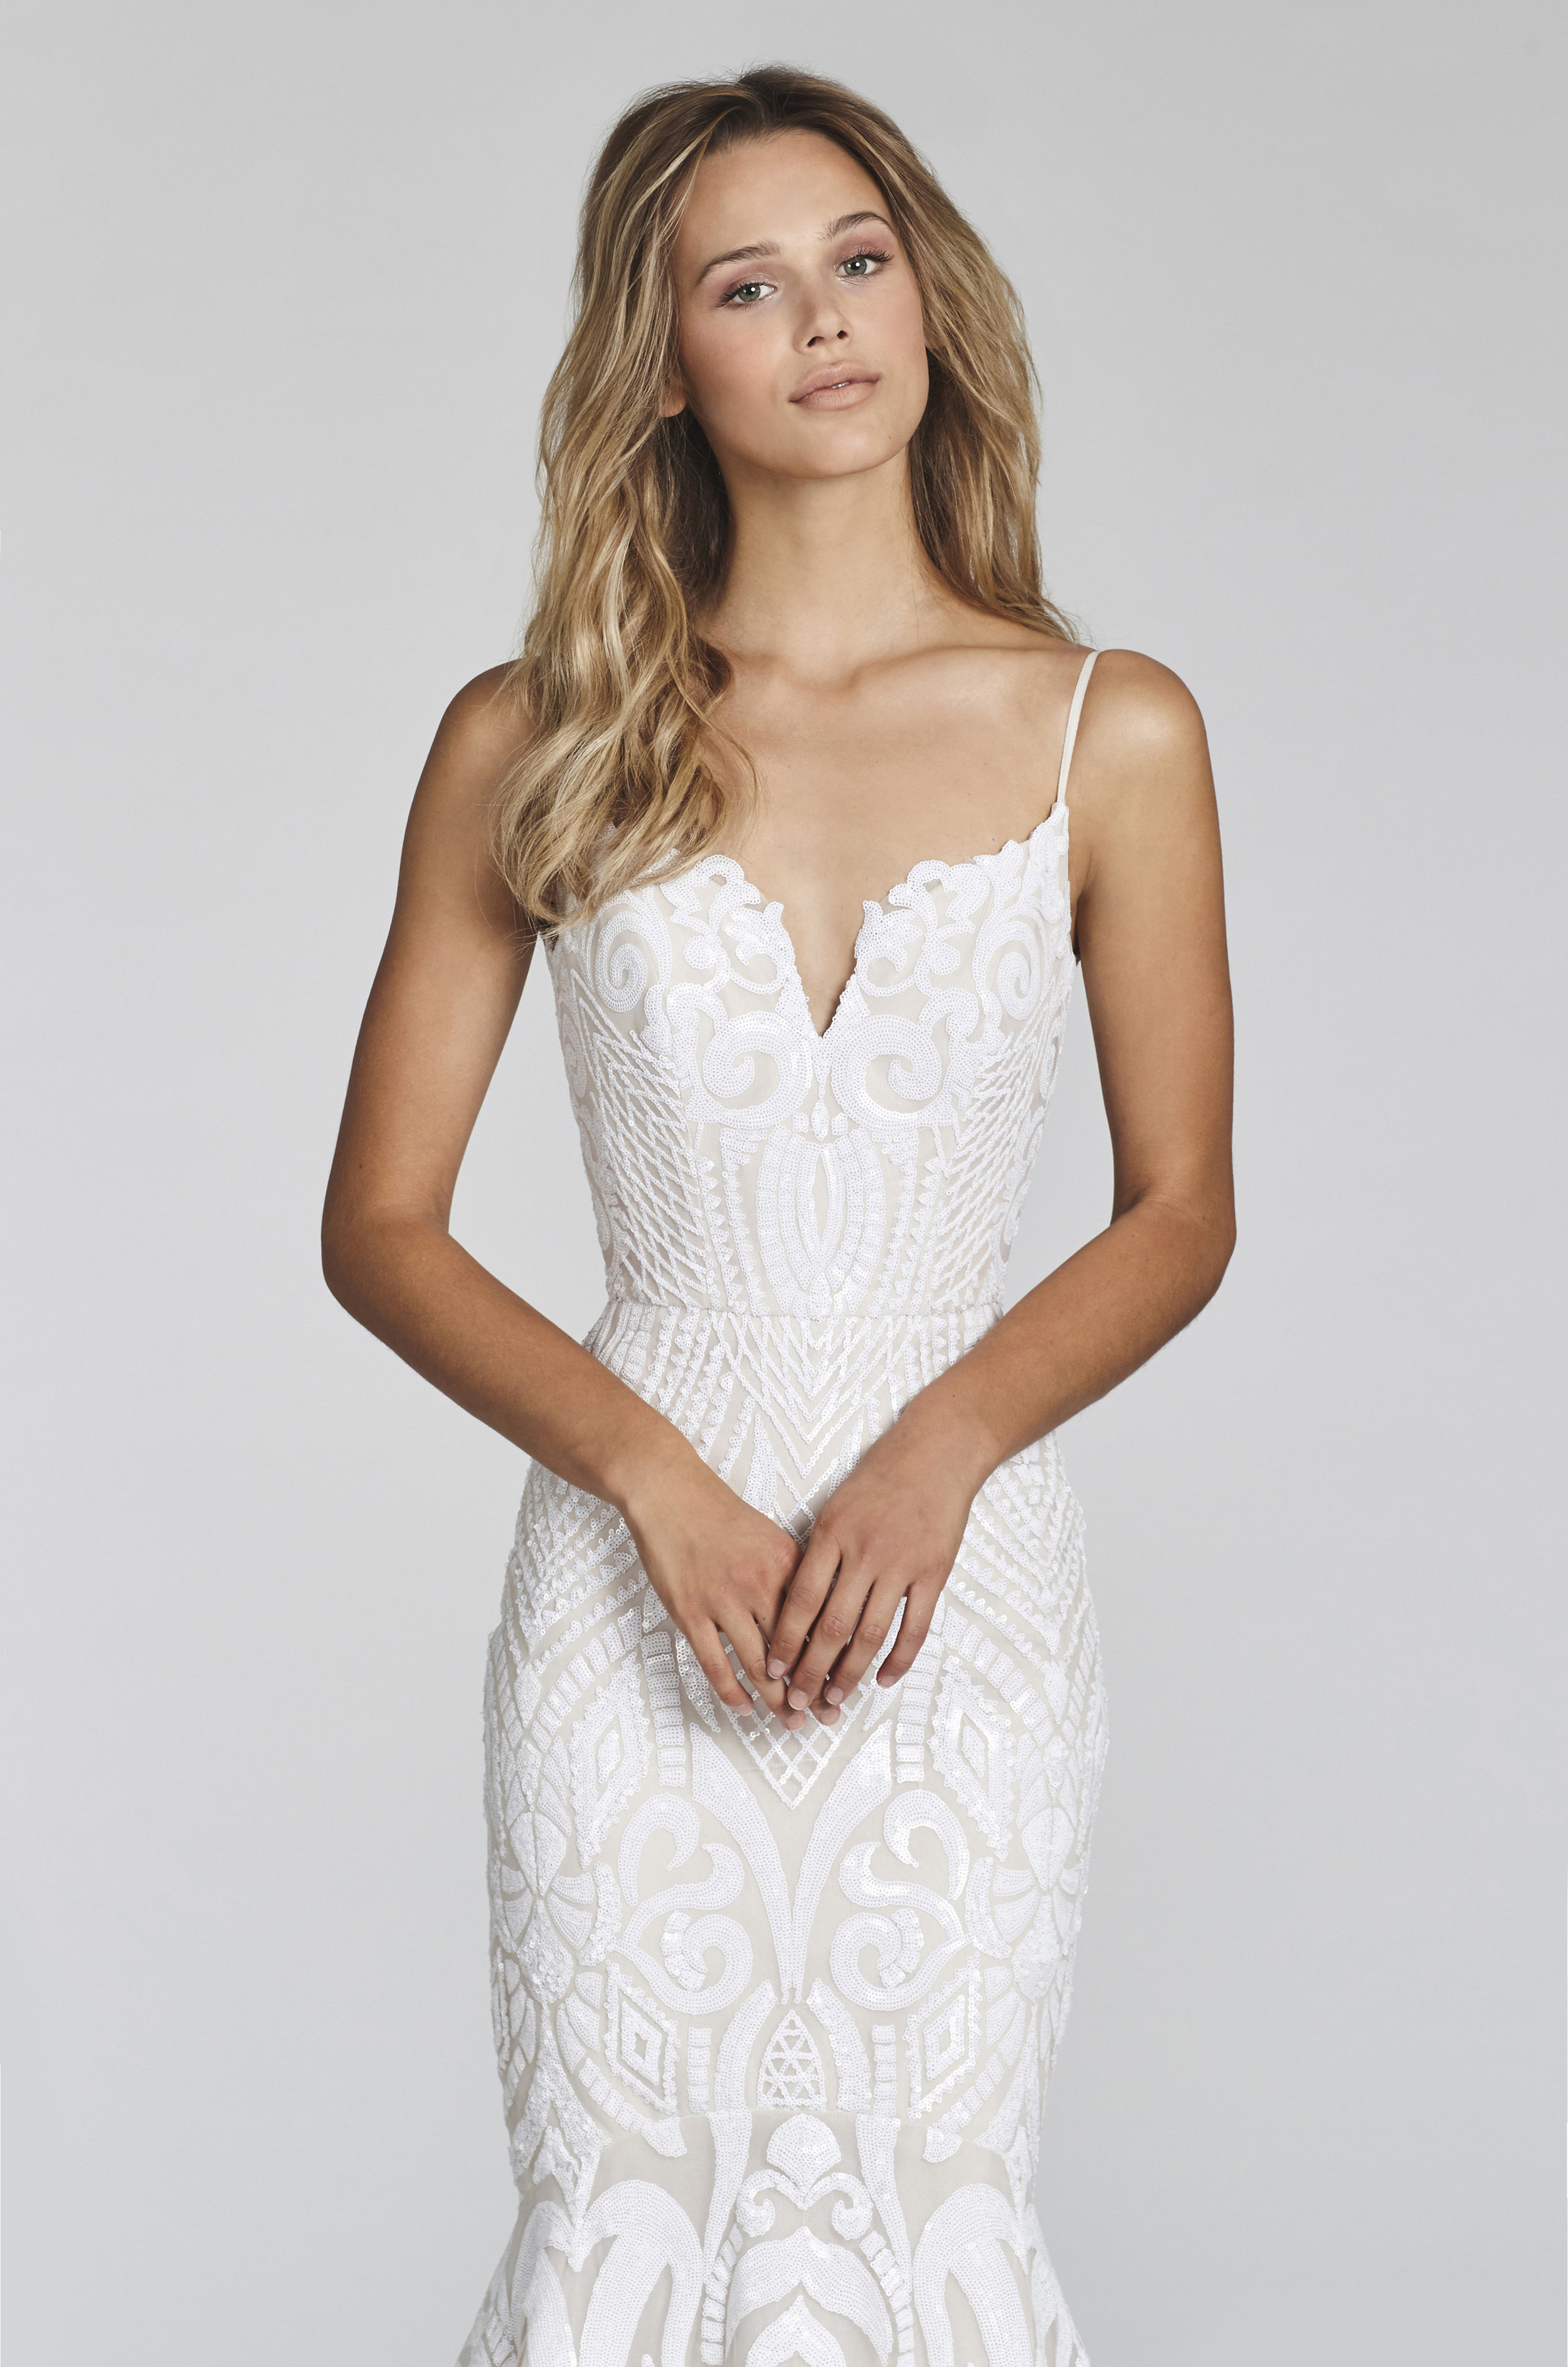 blush-hayley-paige-bridal-spring-2017-style-1710-west_1.jpg